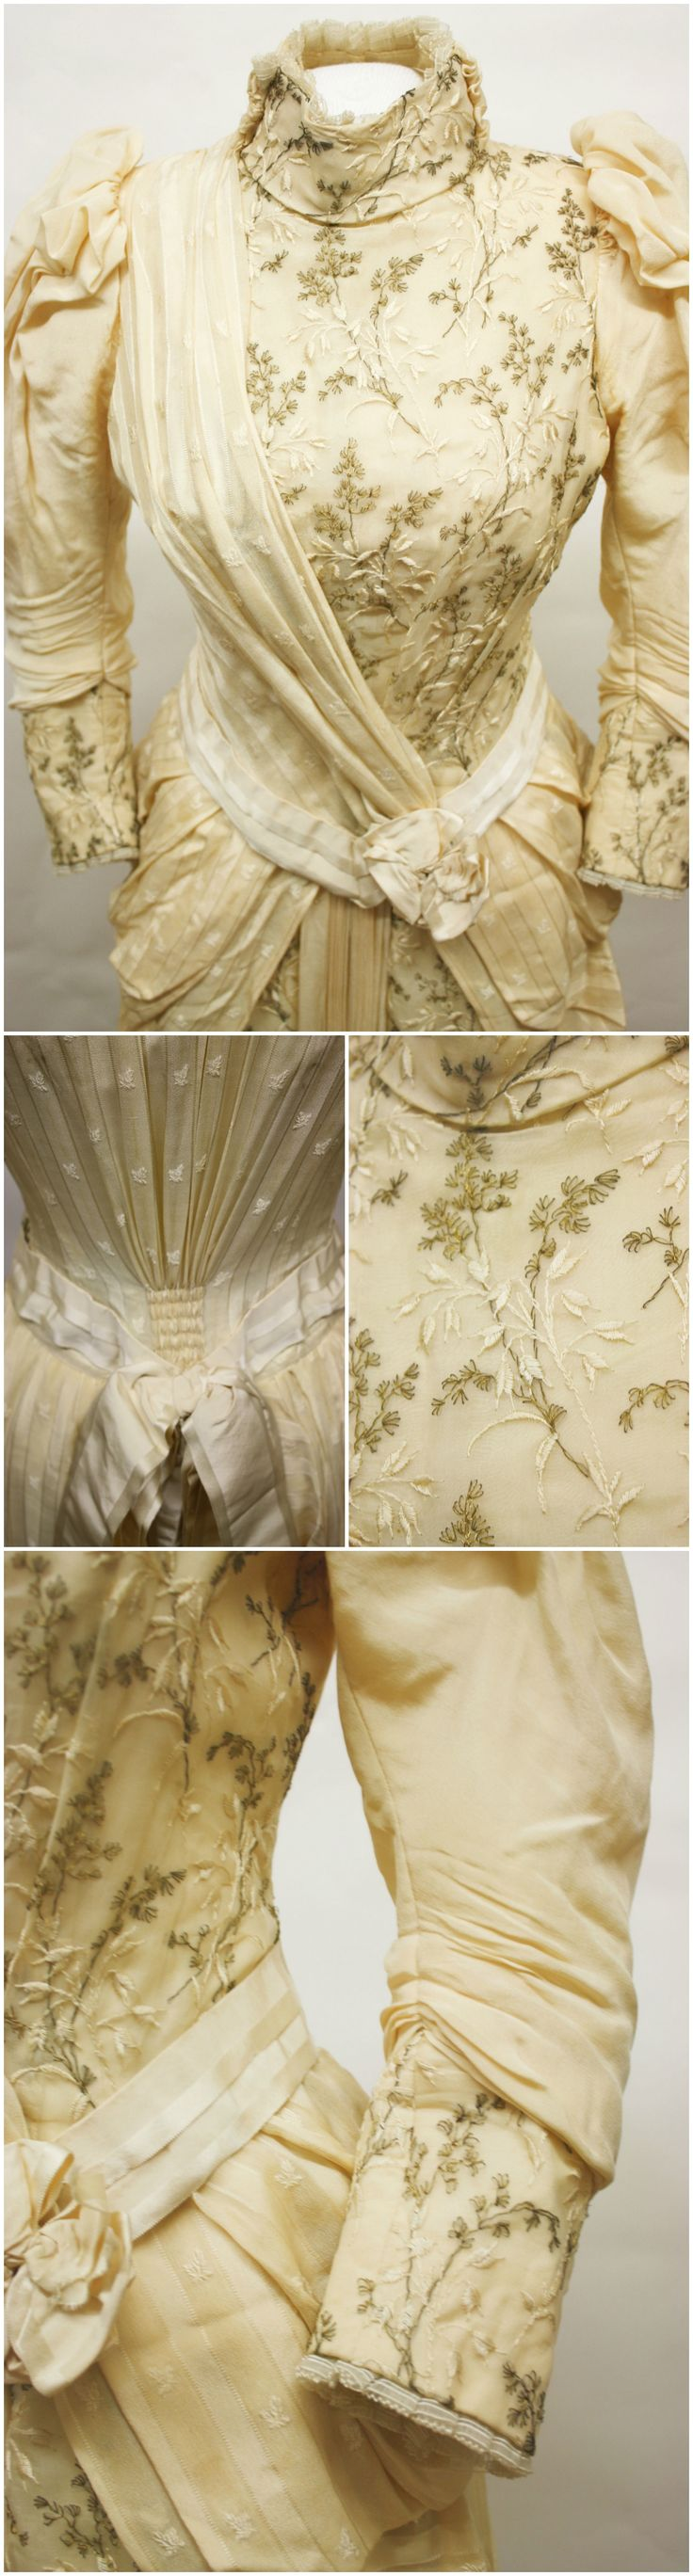 Two piece (bodice and skirt) silk dress ensemble, by Henrietta Frame, circa 1885-1890, at the Fenimore Art Museum, Cooperstown, New York. Owned by Maria Williams Proctor, who wore it to a wedding on June 11, 1890. Photos: The Clothing Project on Tumblr.